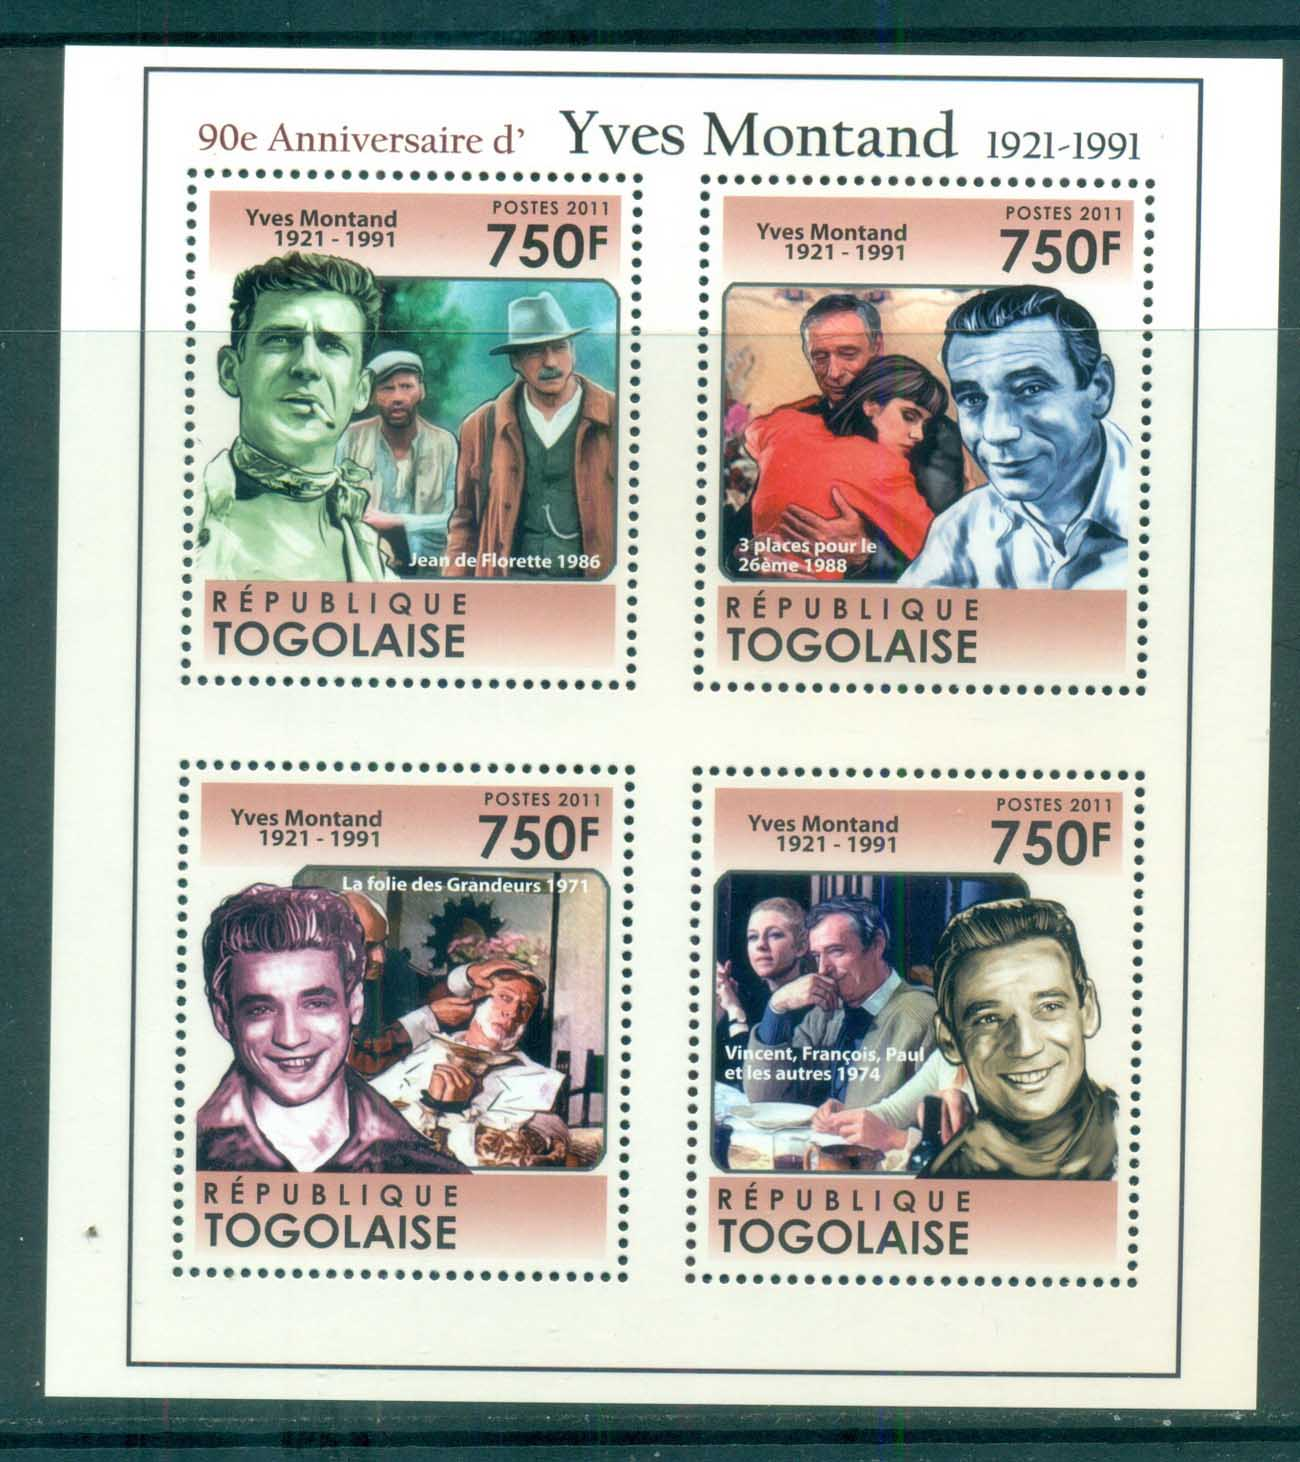 Togo 2011 Famous People, Film, Yves Montand MS MUH TG11304a